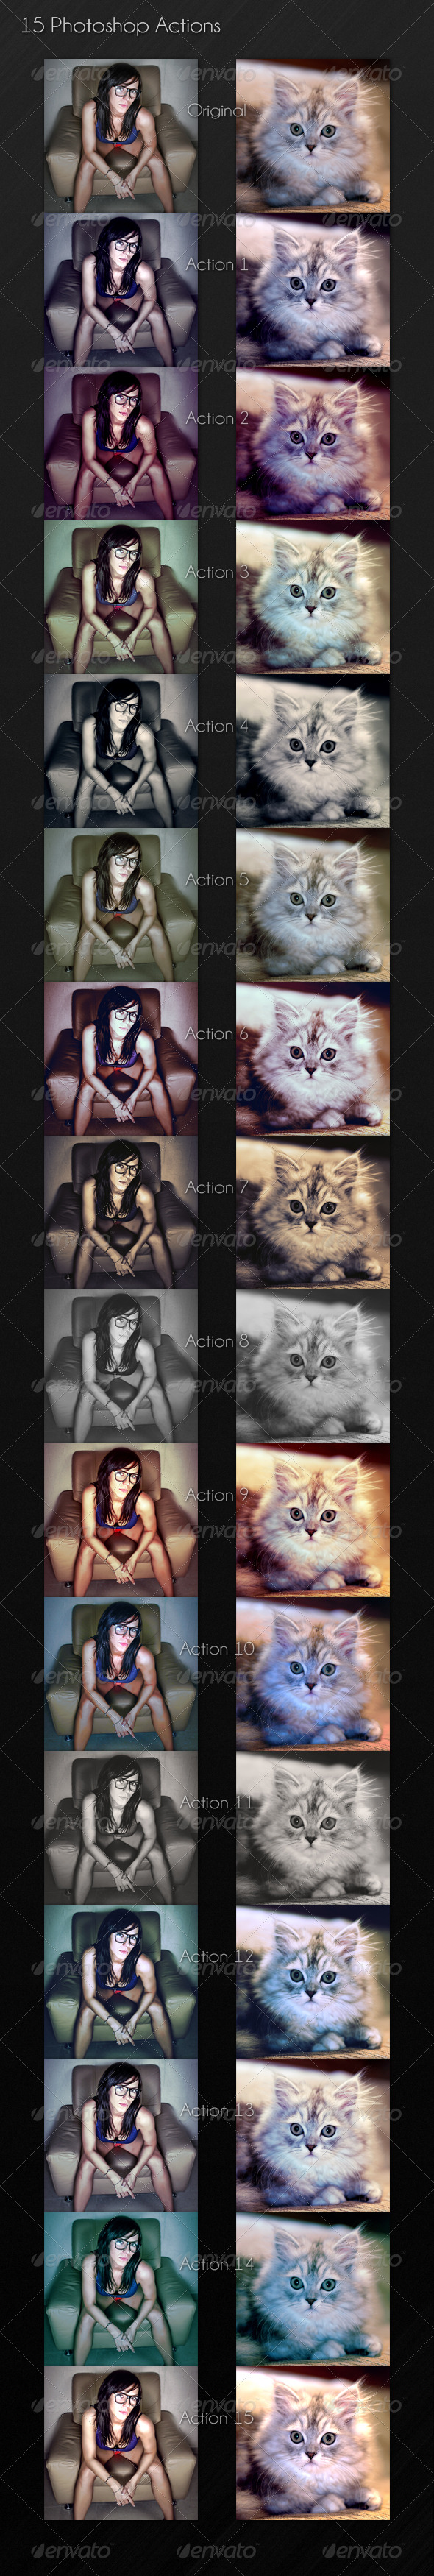 15 Photoshop Actions - Photo Effects Actions